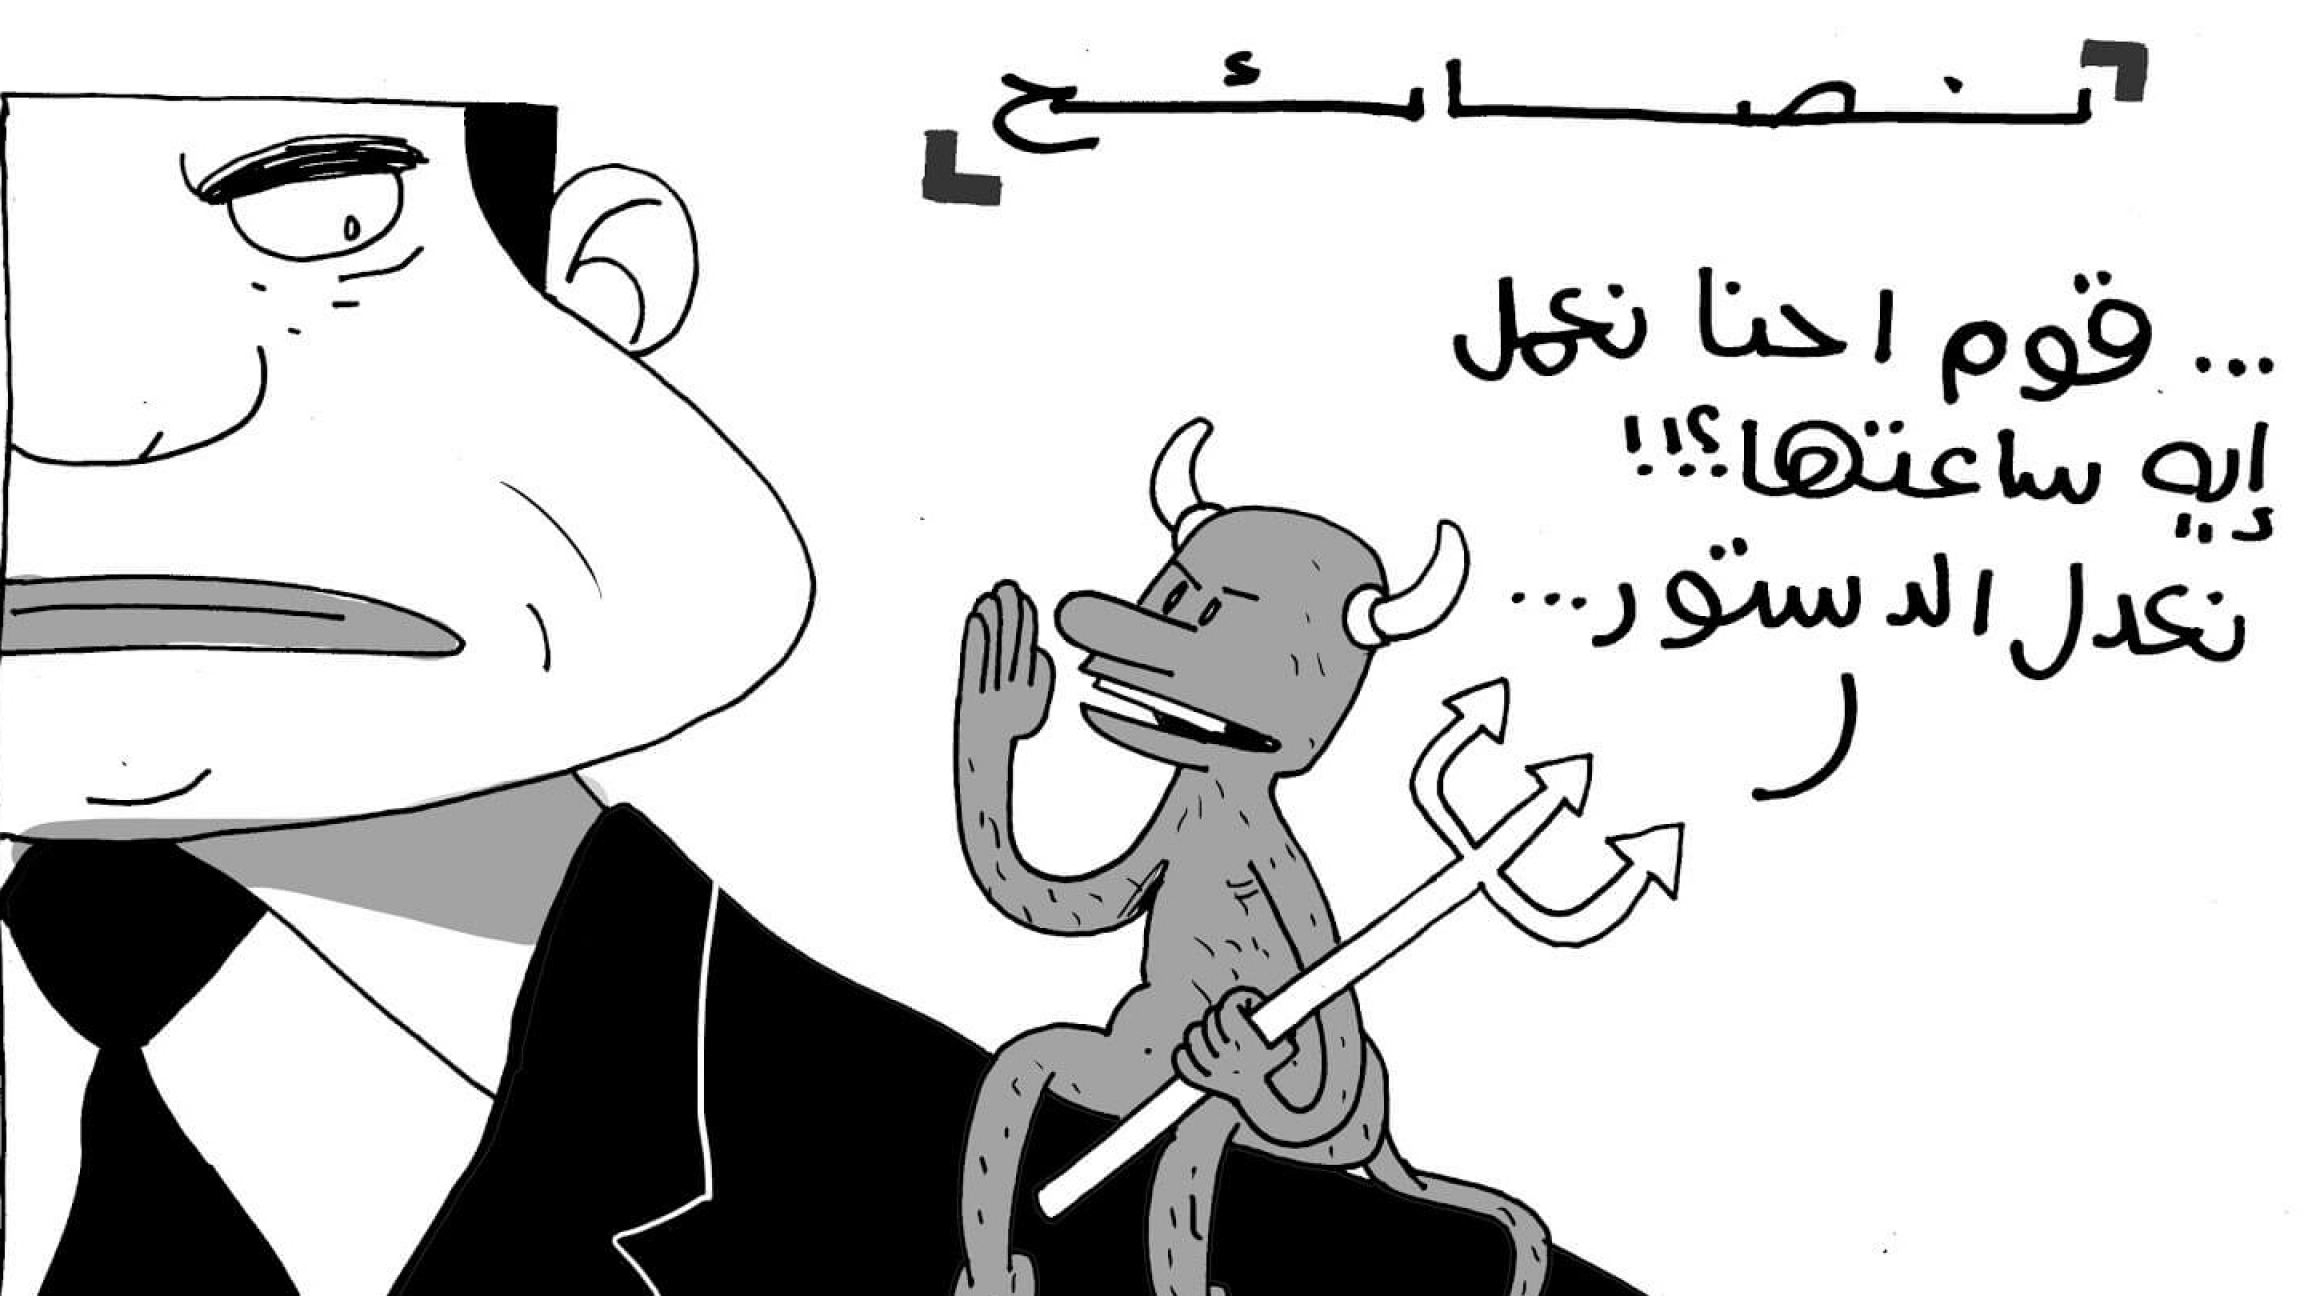 A devil cartoon sits on shoulder of cartoon image of a president with Arabic script.